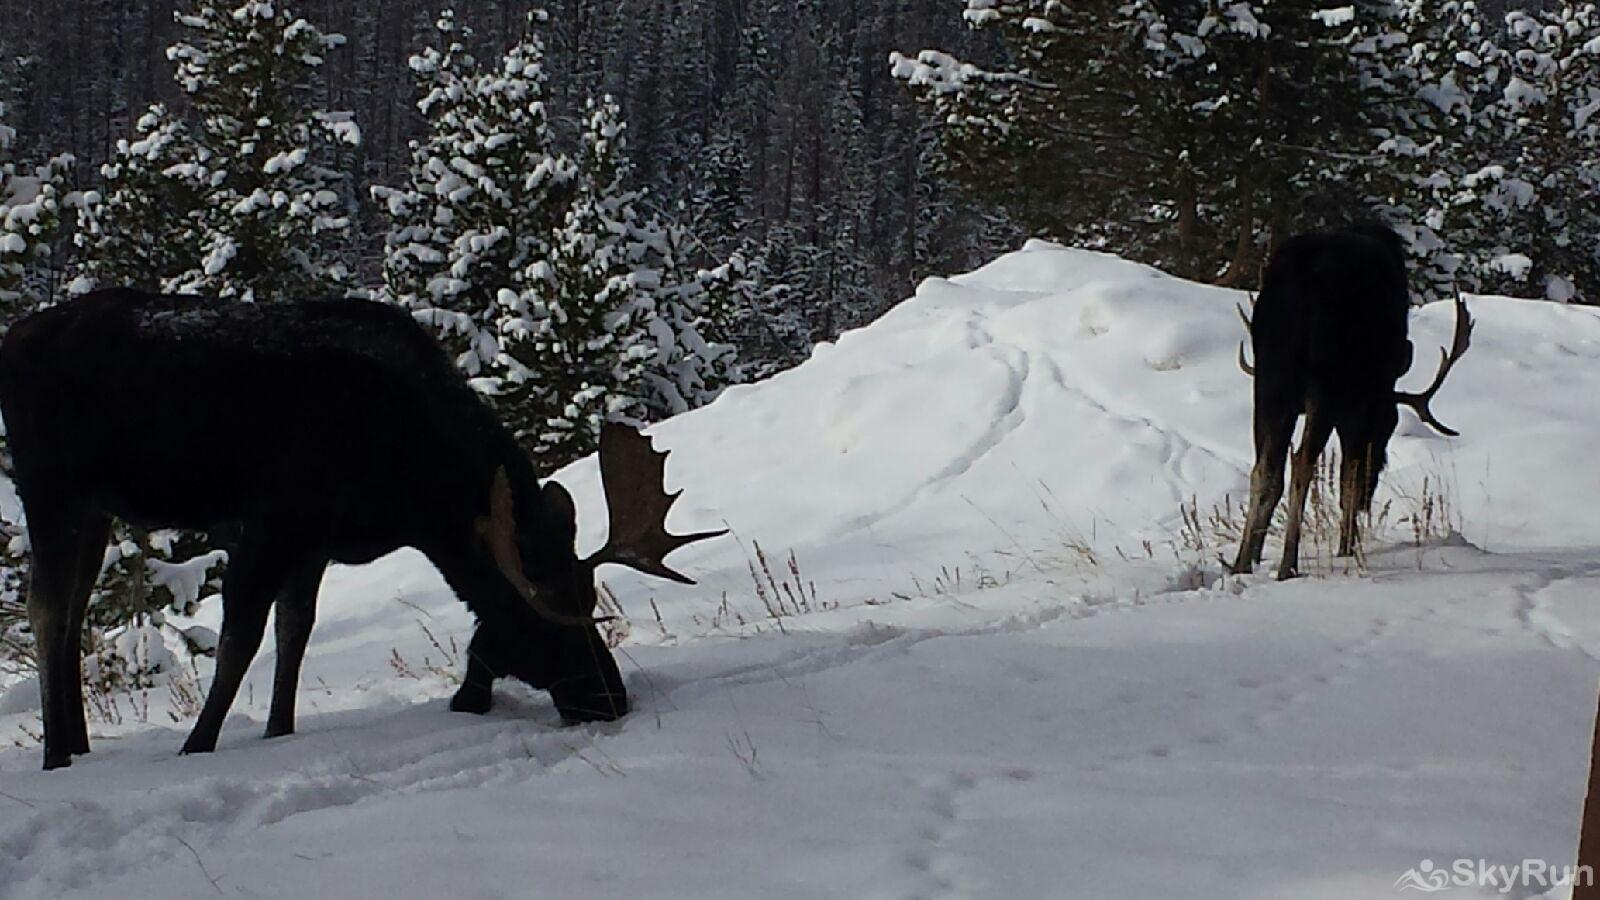 522 Watch Hill Moose visiting the area!